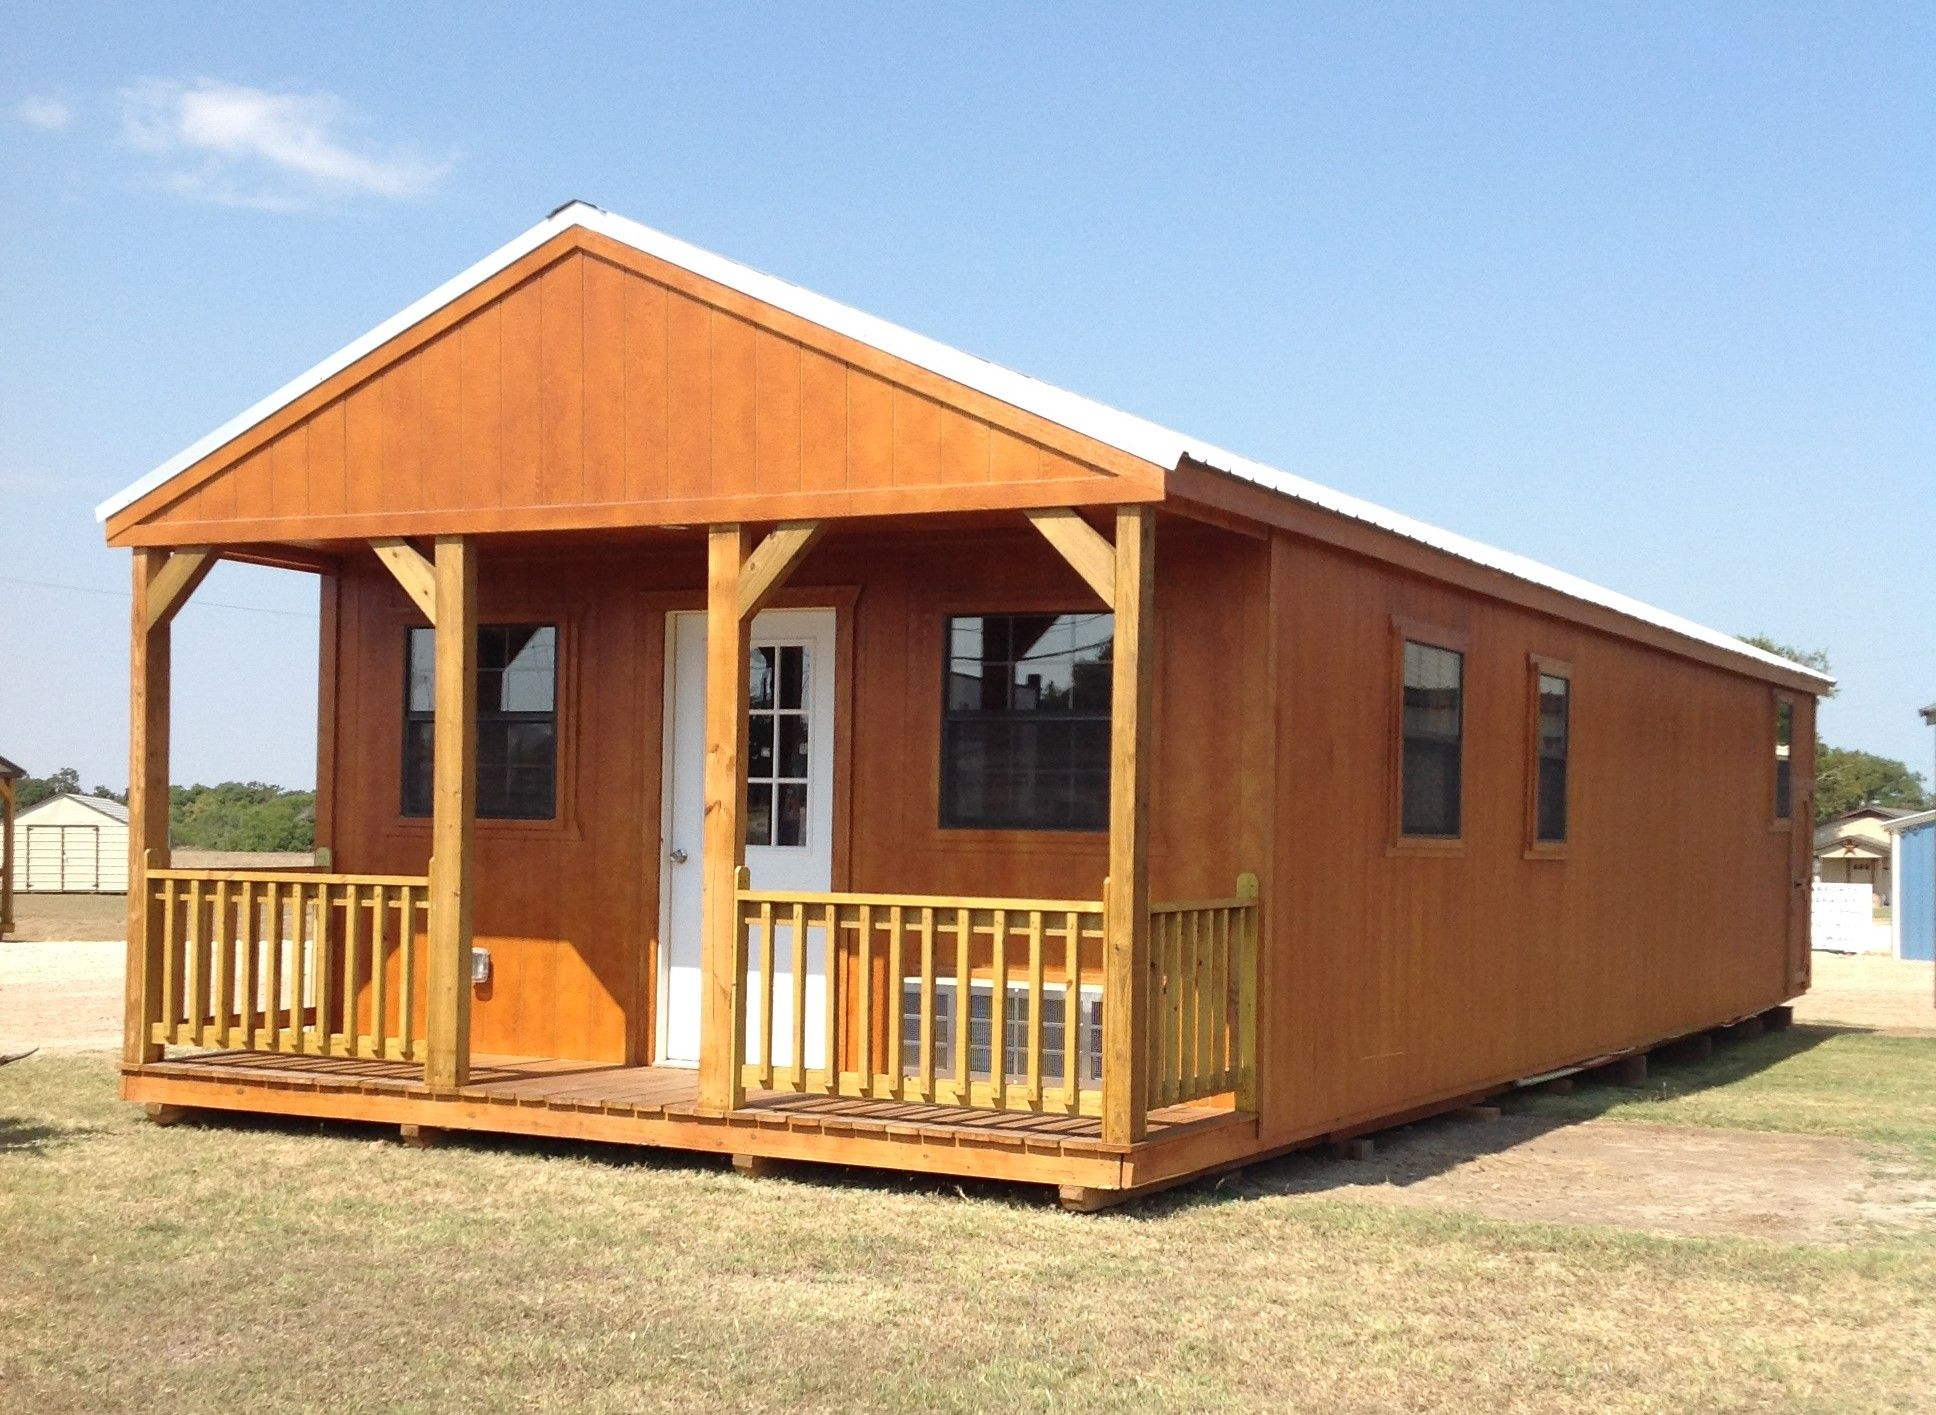 16 X 50 Two Bedroom Cabin 800 Sq Ft Includes All Appliances And